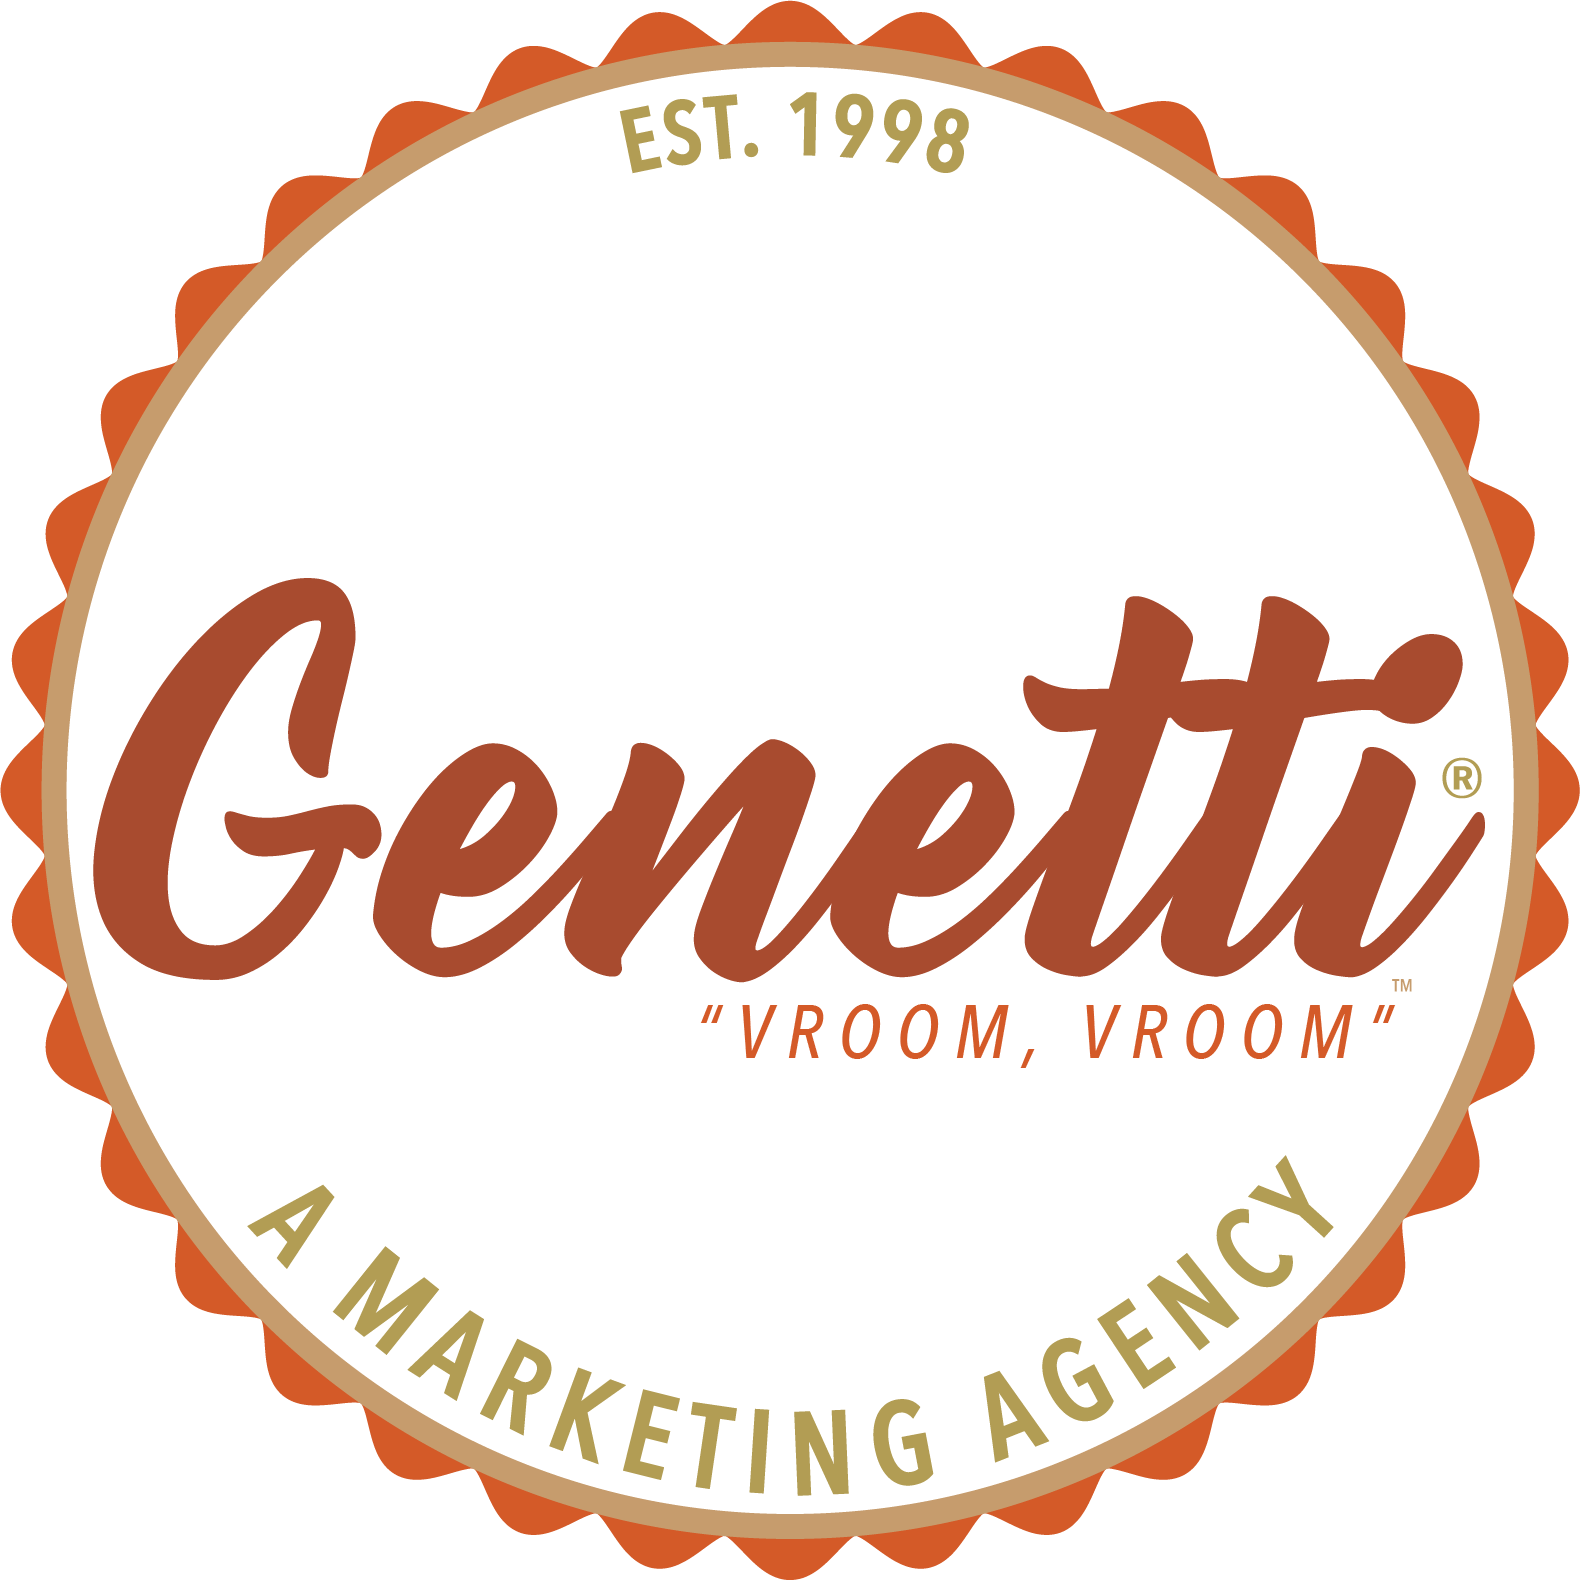 Genetti Design and Print